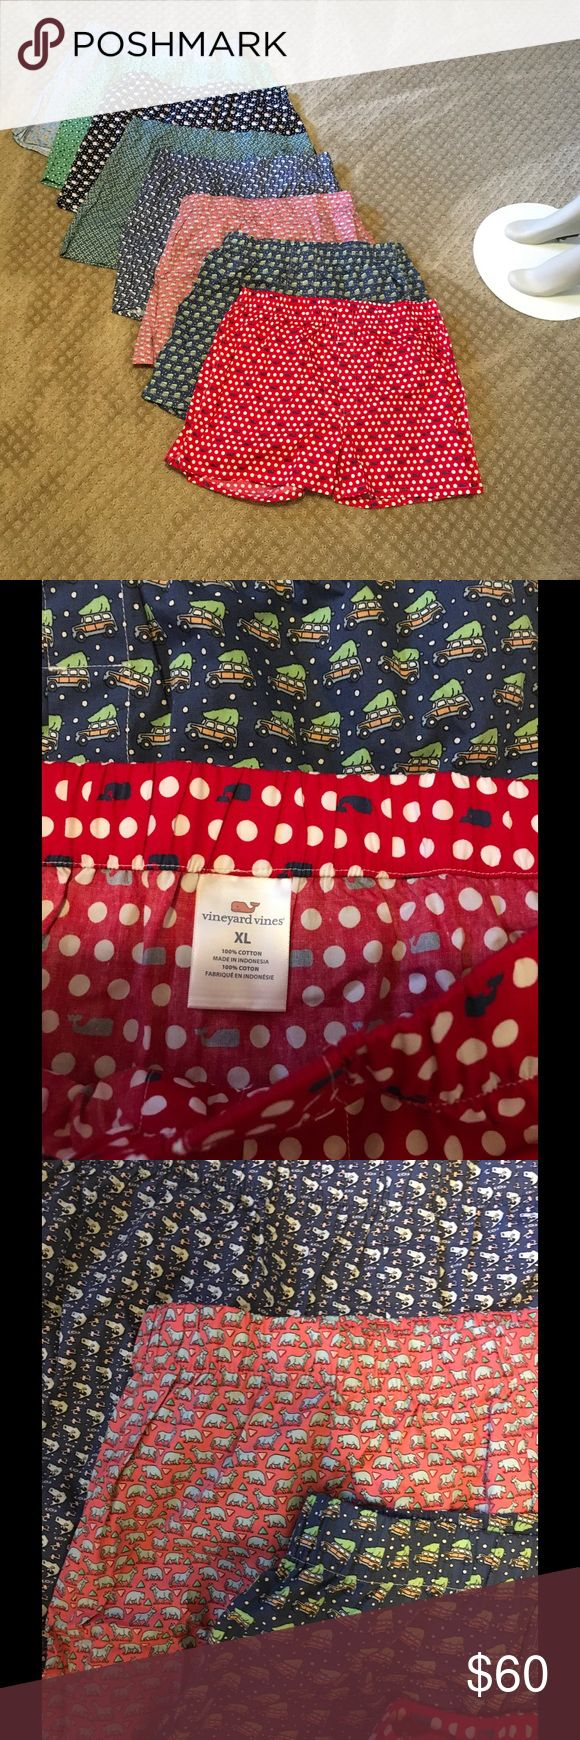 Vineyard Vines New Boxer Shorts Bundle 8 pair crisp new boxers, out of the packaging but never worn never washed, brand new condition. Vineyard Vines Underwear & Socks Boxers